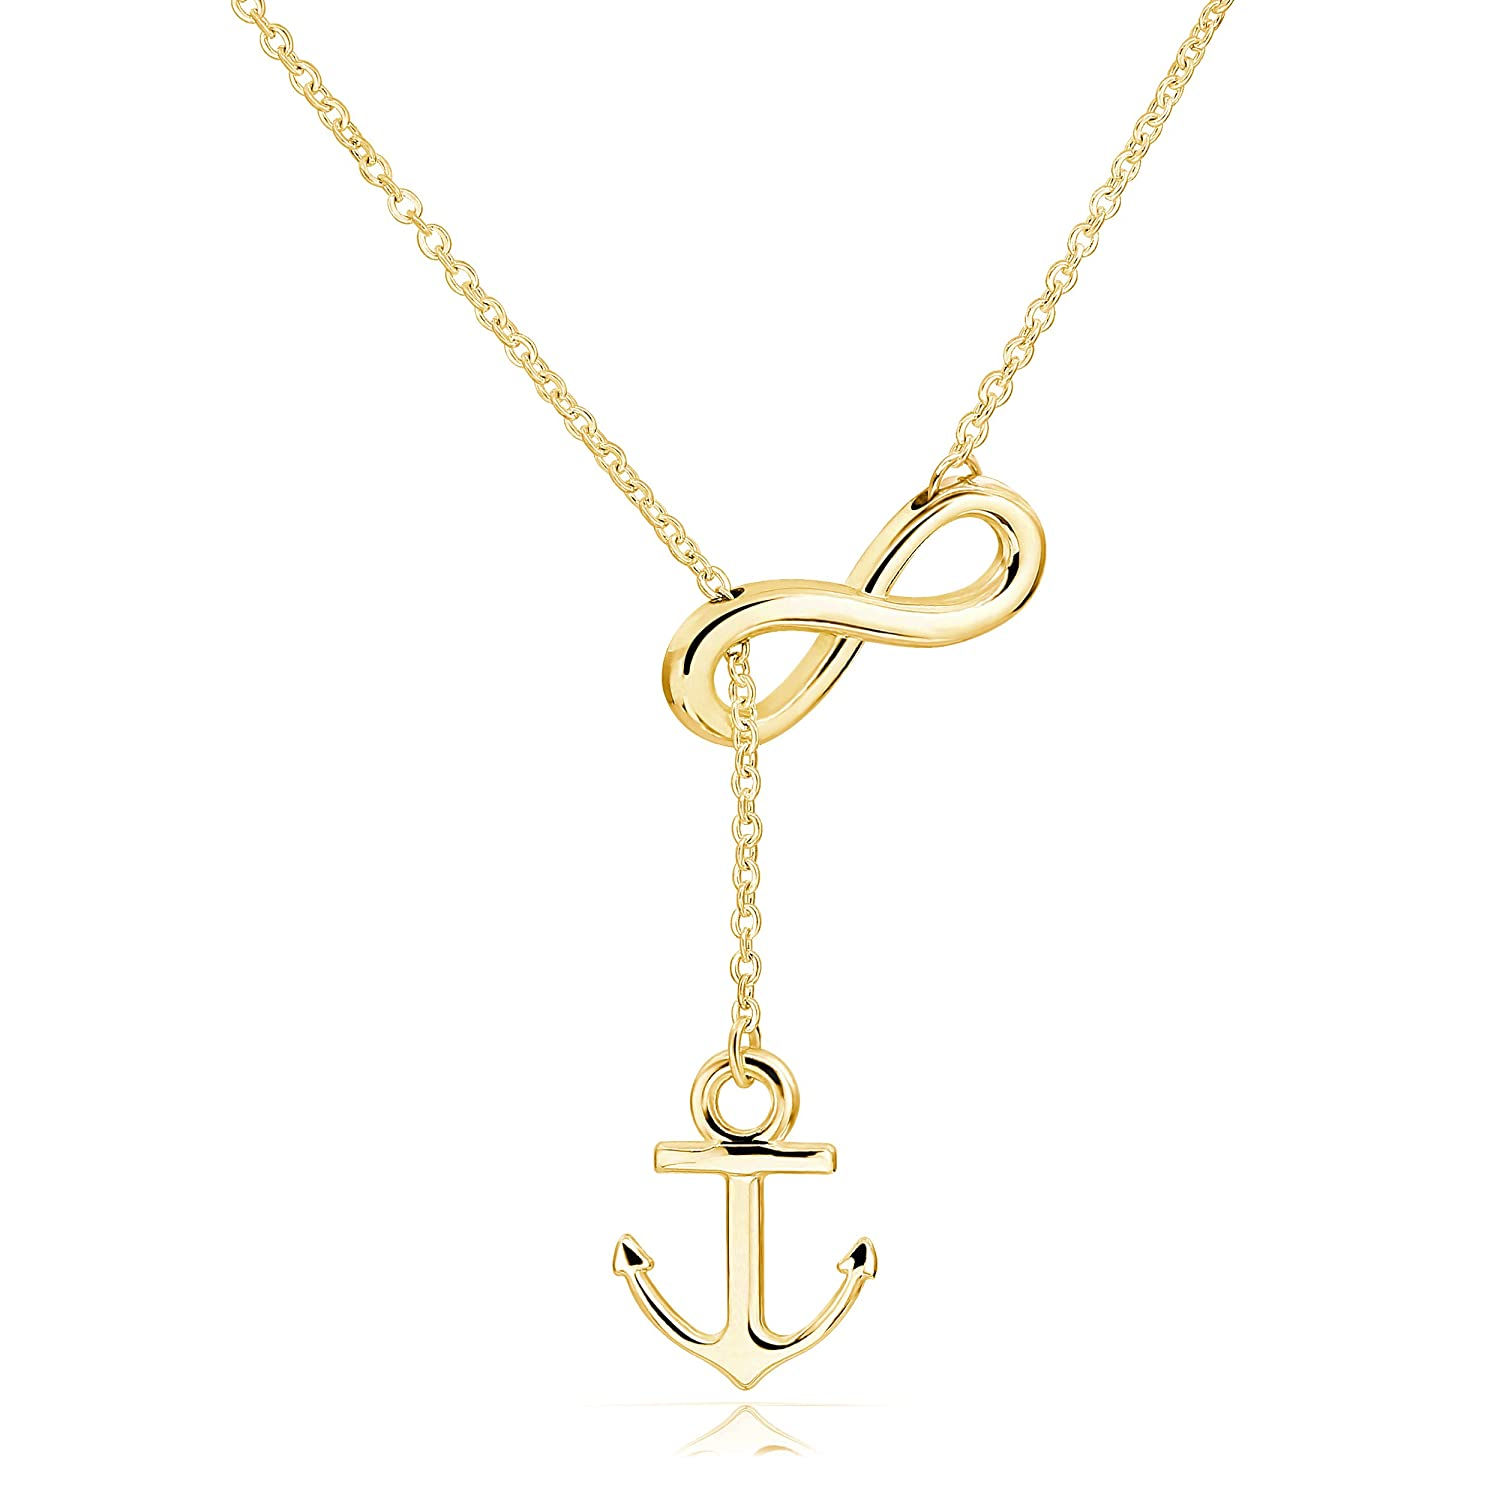 ELBLUVF Newest Stainless Steel Anchor Infinity Y Shaped Lariat Style Necklace 18inch for Women 3 Colors ELBLUVF emily a029